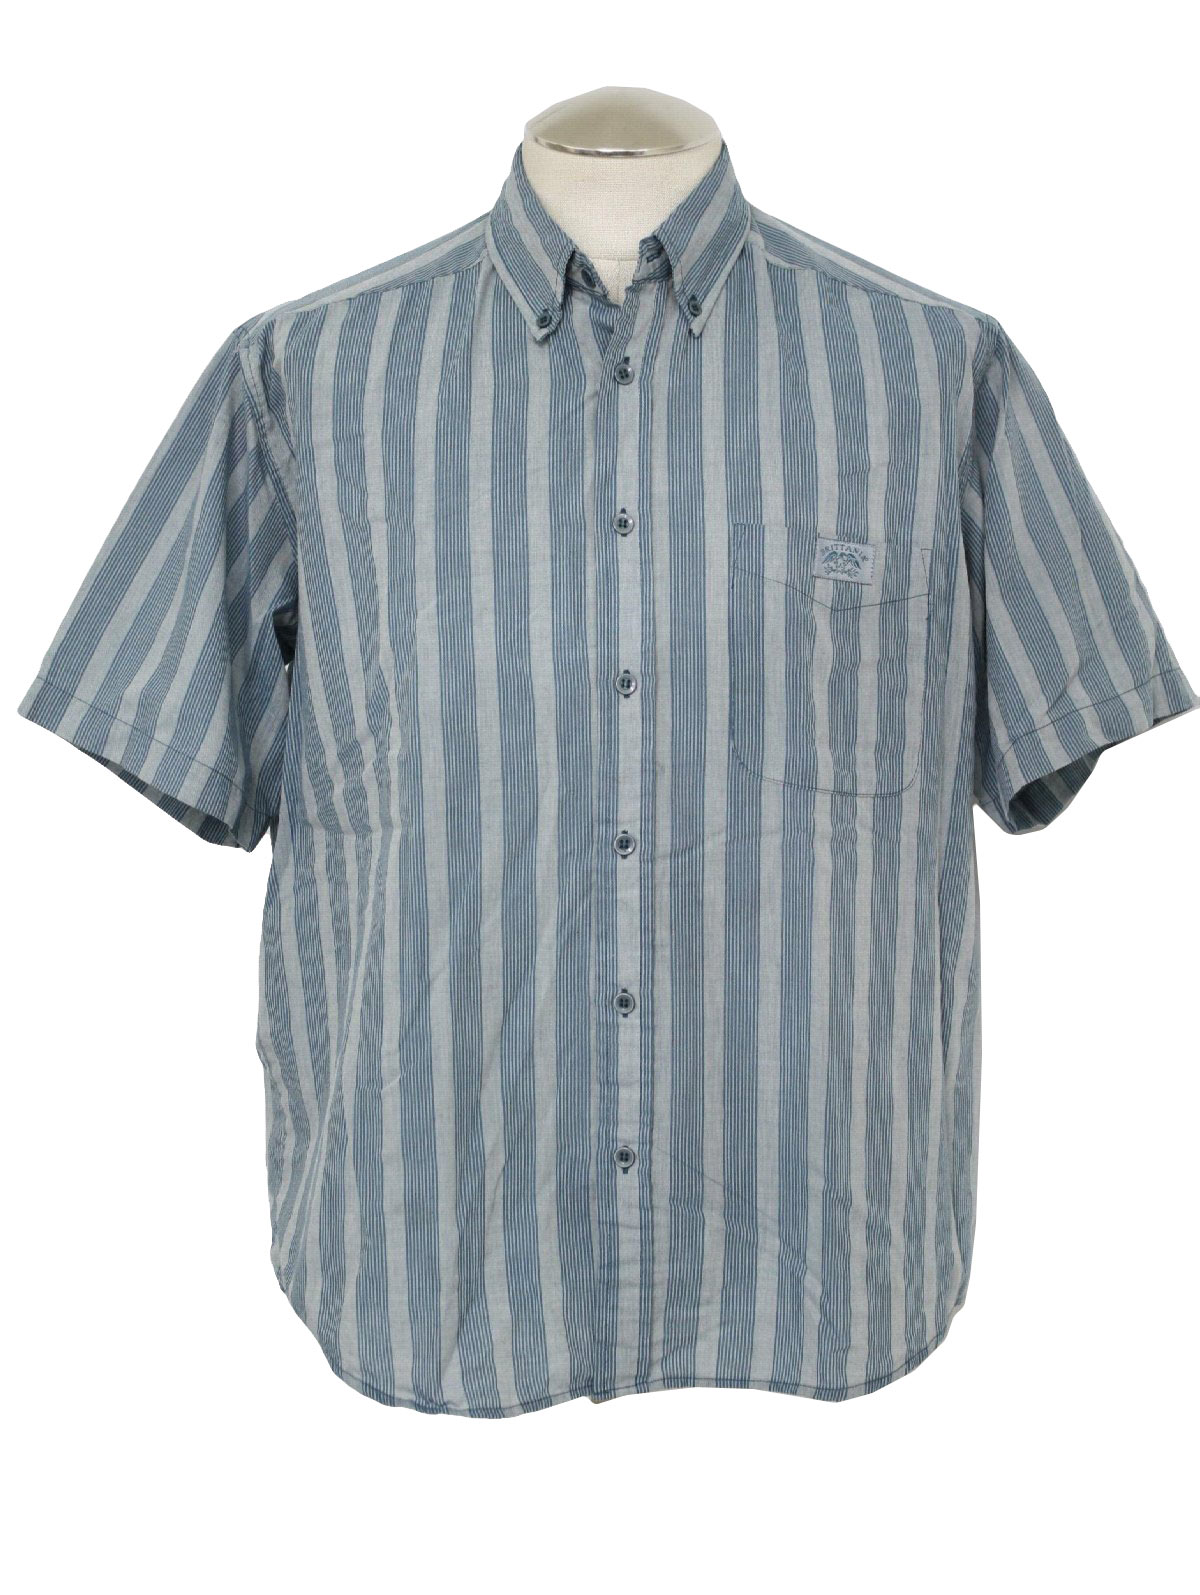 Brittania Eighties Vintage Shirt: 80s -Brittania- Mens blue and ...